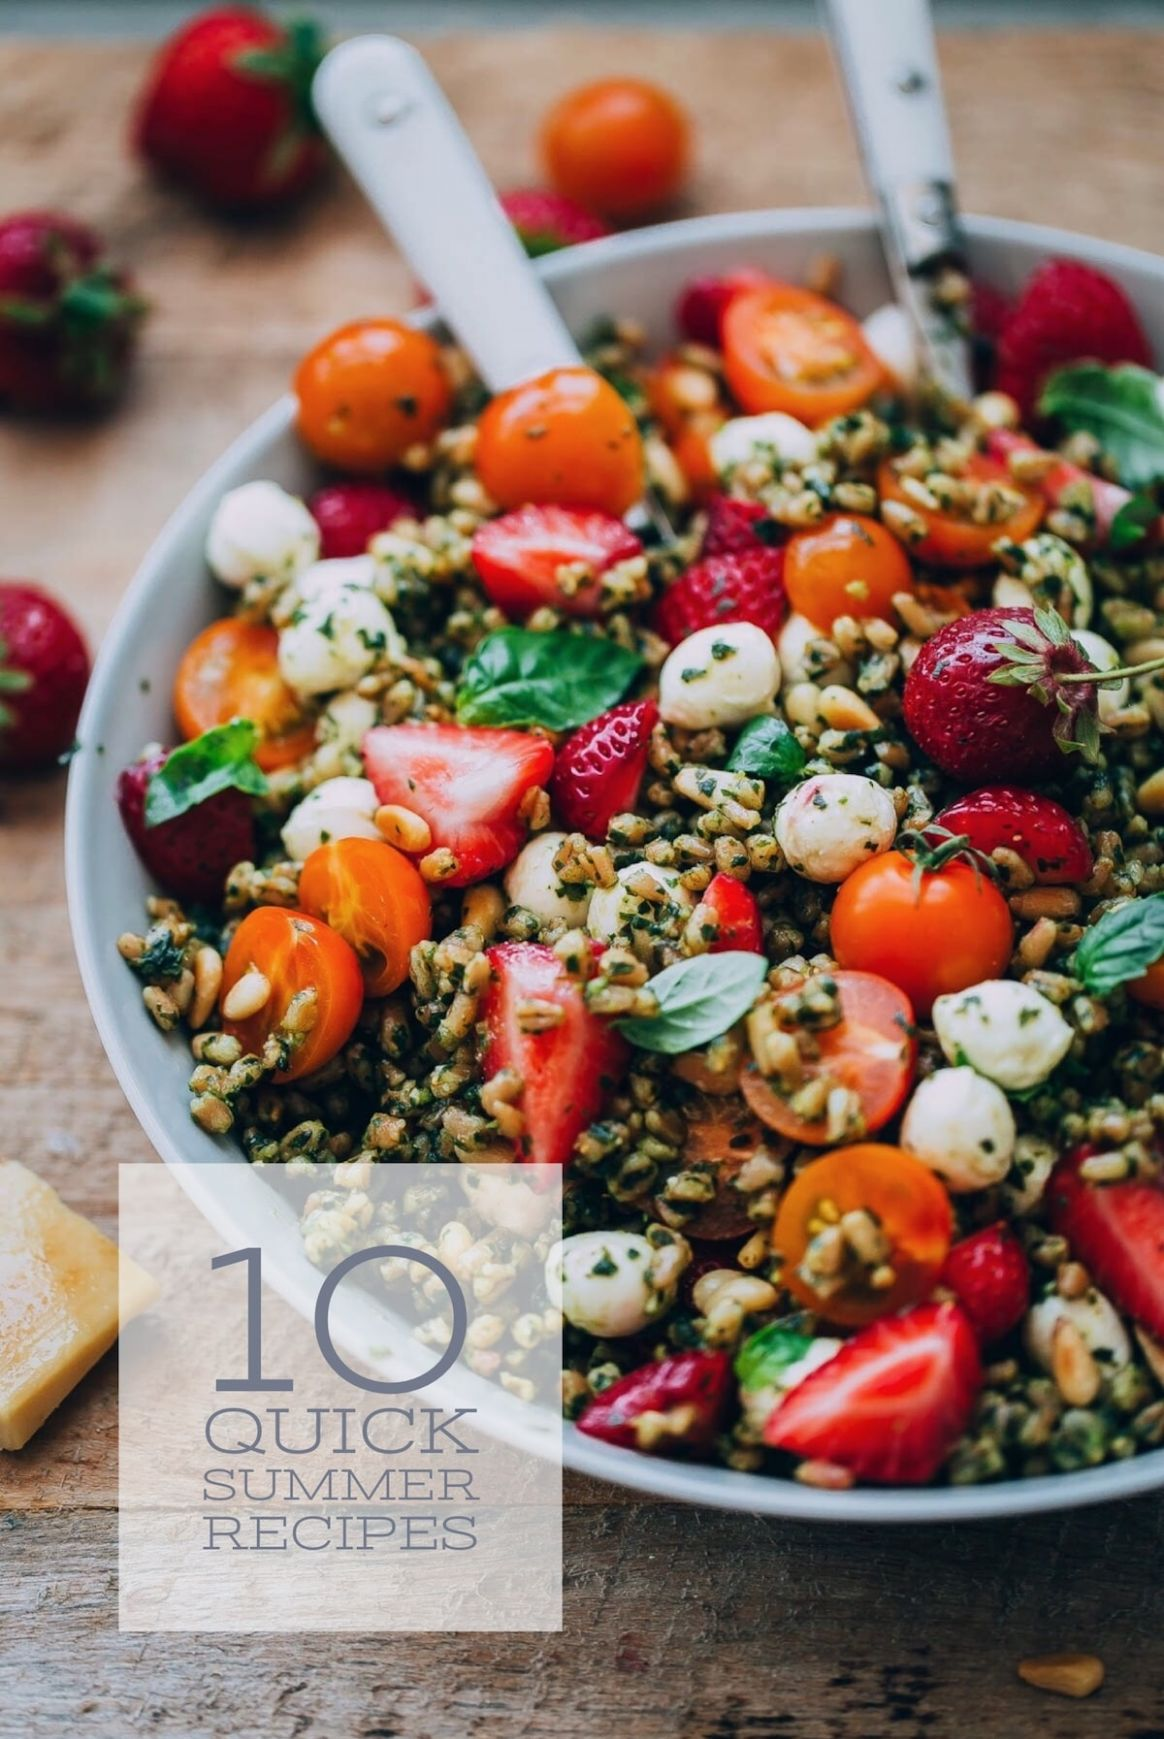 12 Quick Summer Recipes - A Beautiful Plate - Summer Recipes For A Crowd